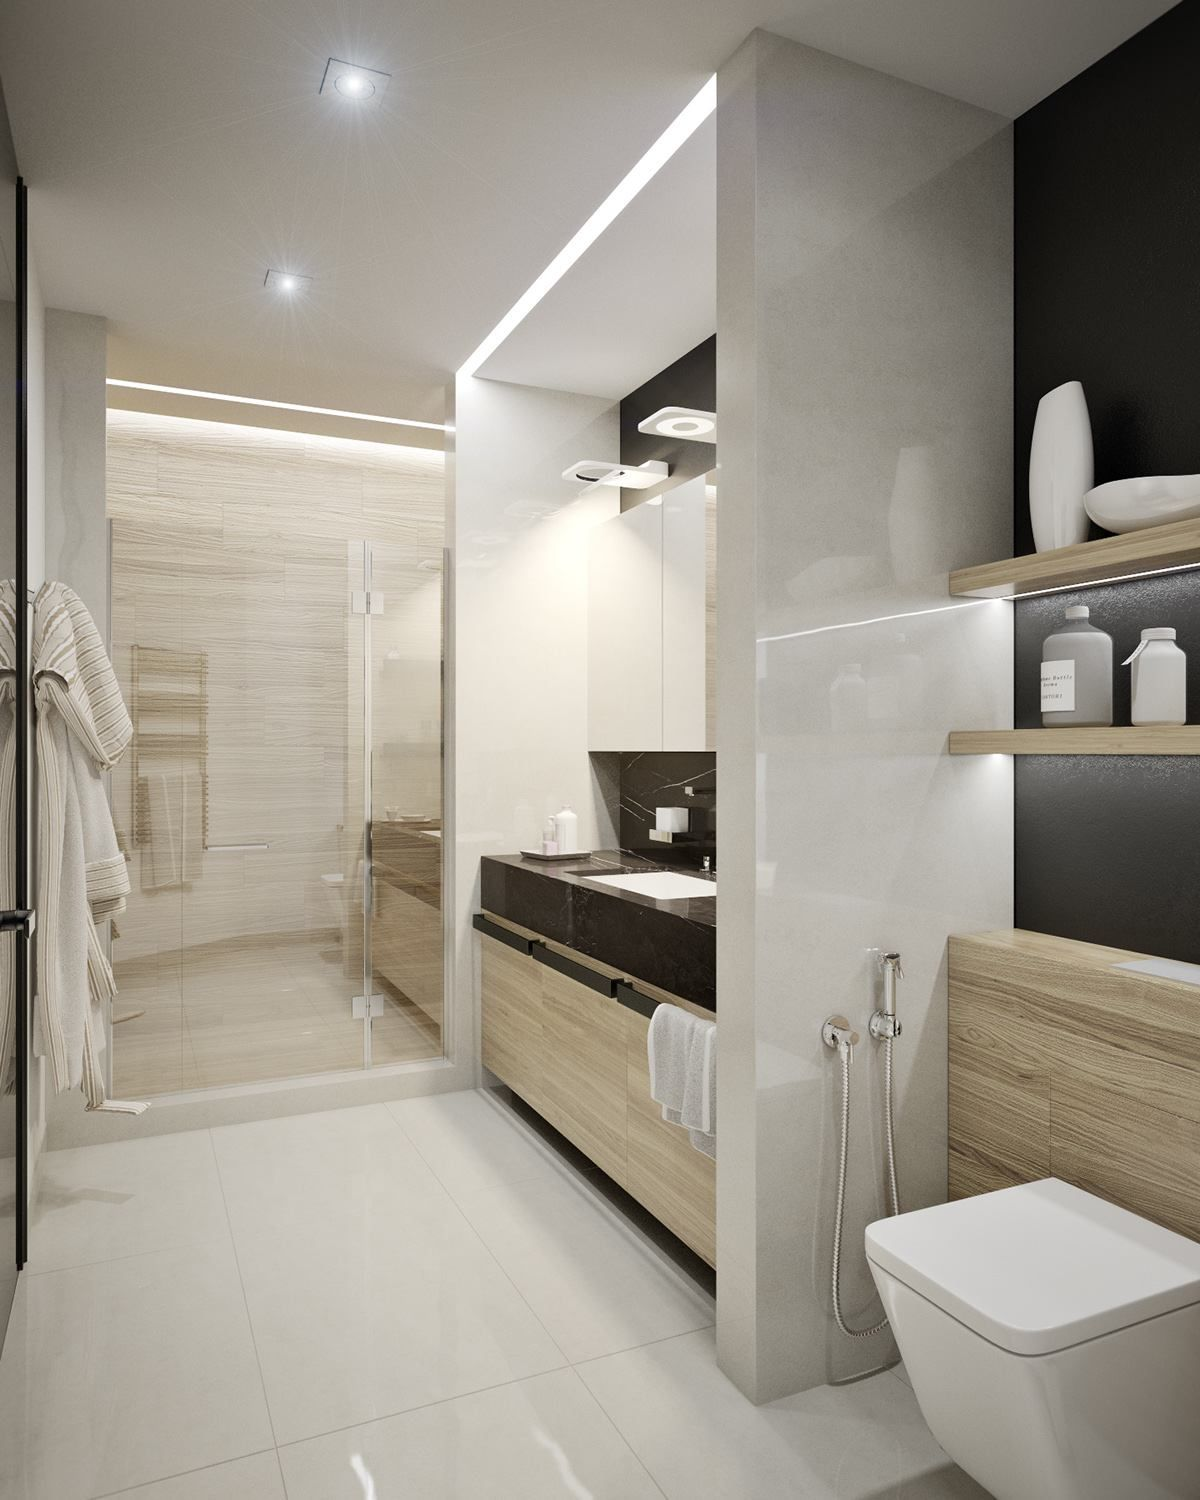 Apartment Bathroom Ideas: 5 Ideas For A One Bedroom Apartment With Study (Includes